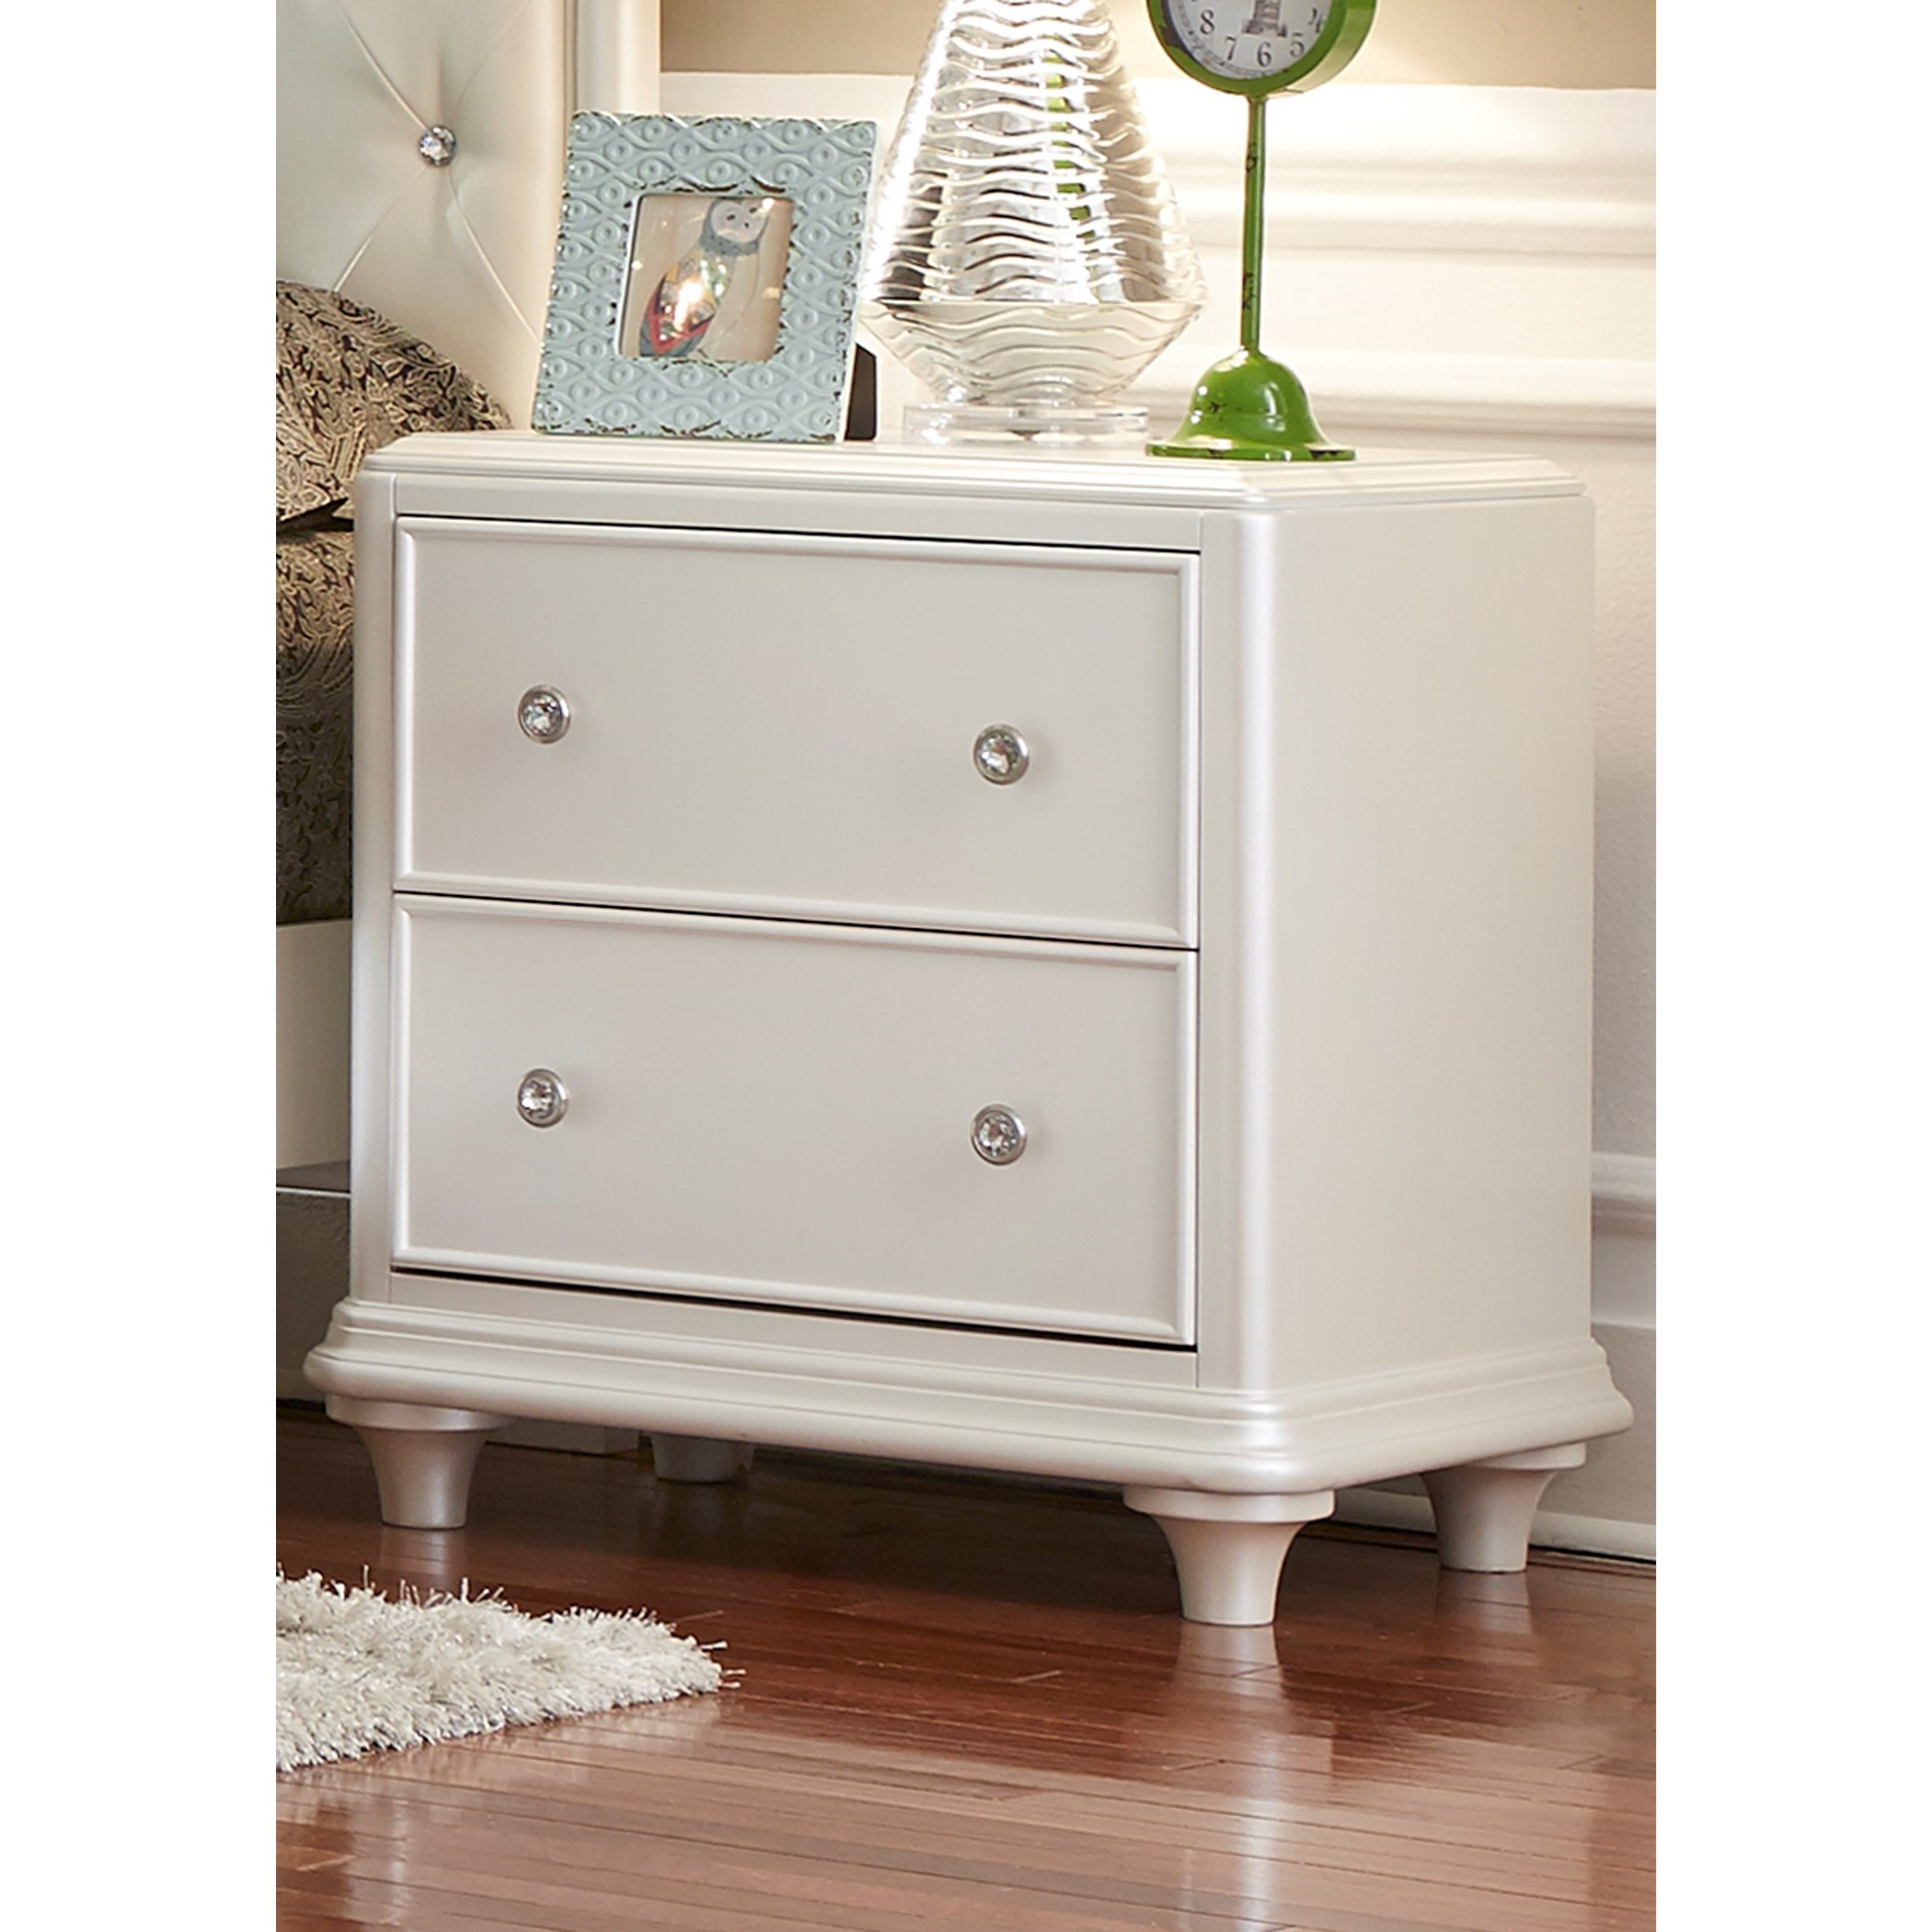 Stardust 2 Drawer Night Stand by Liberty Furniture at Darvin Furniture